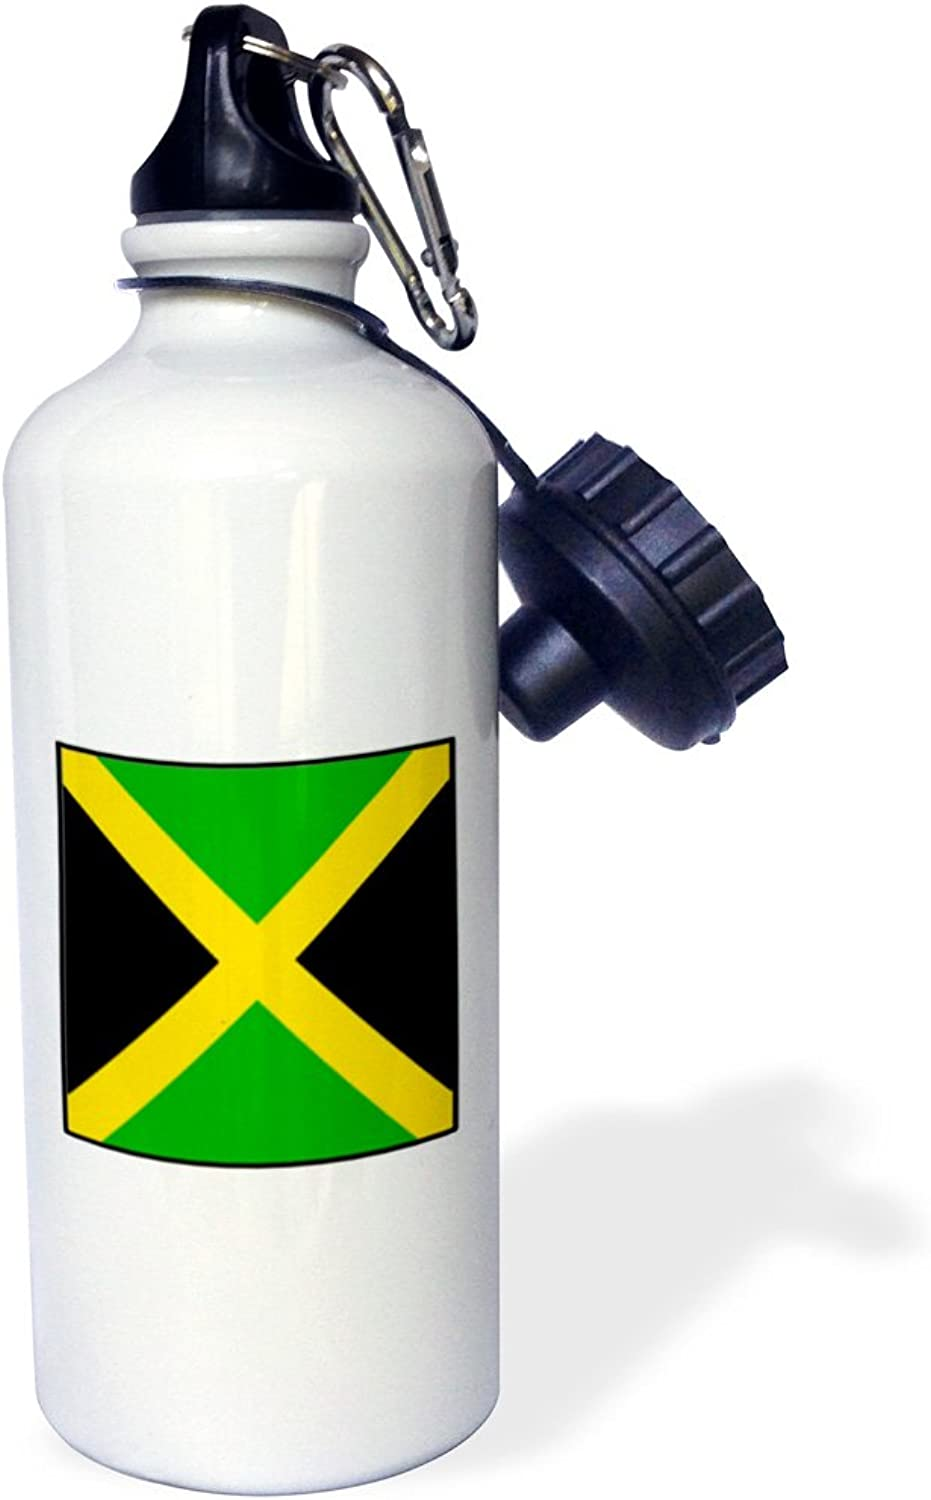 3dpink wb_80983_1  Photo Of Jamaica Flag Button  Sports Water Bottle, 21 oz, White